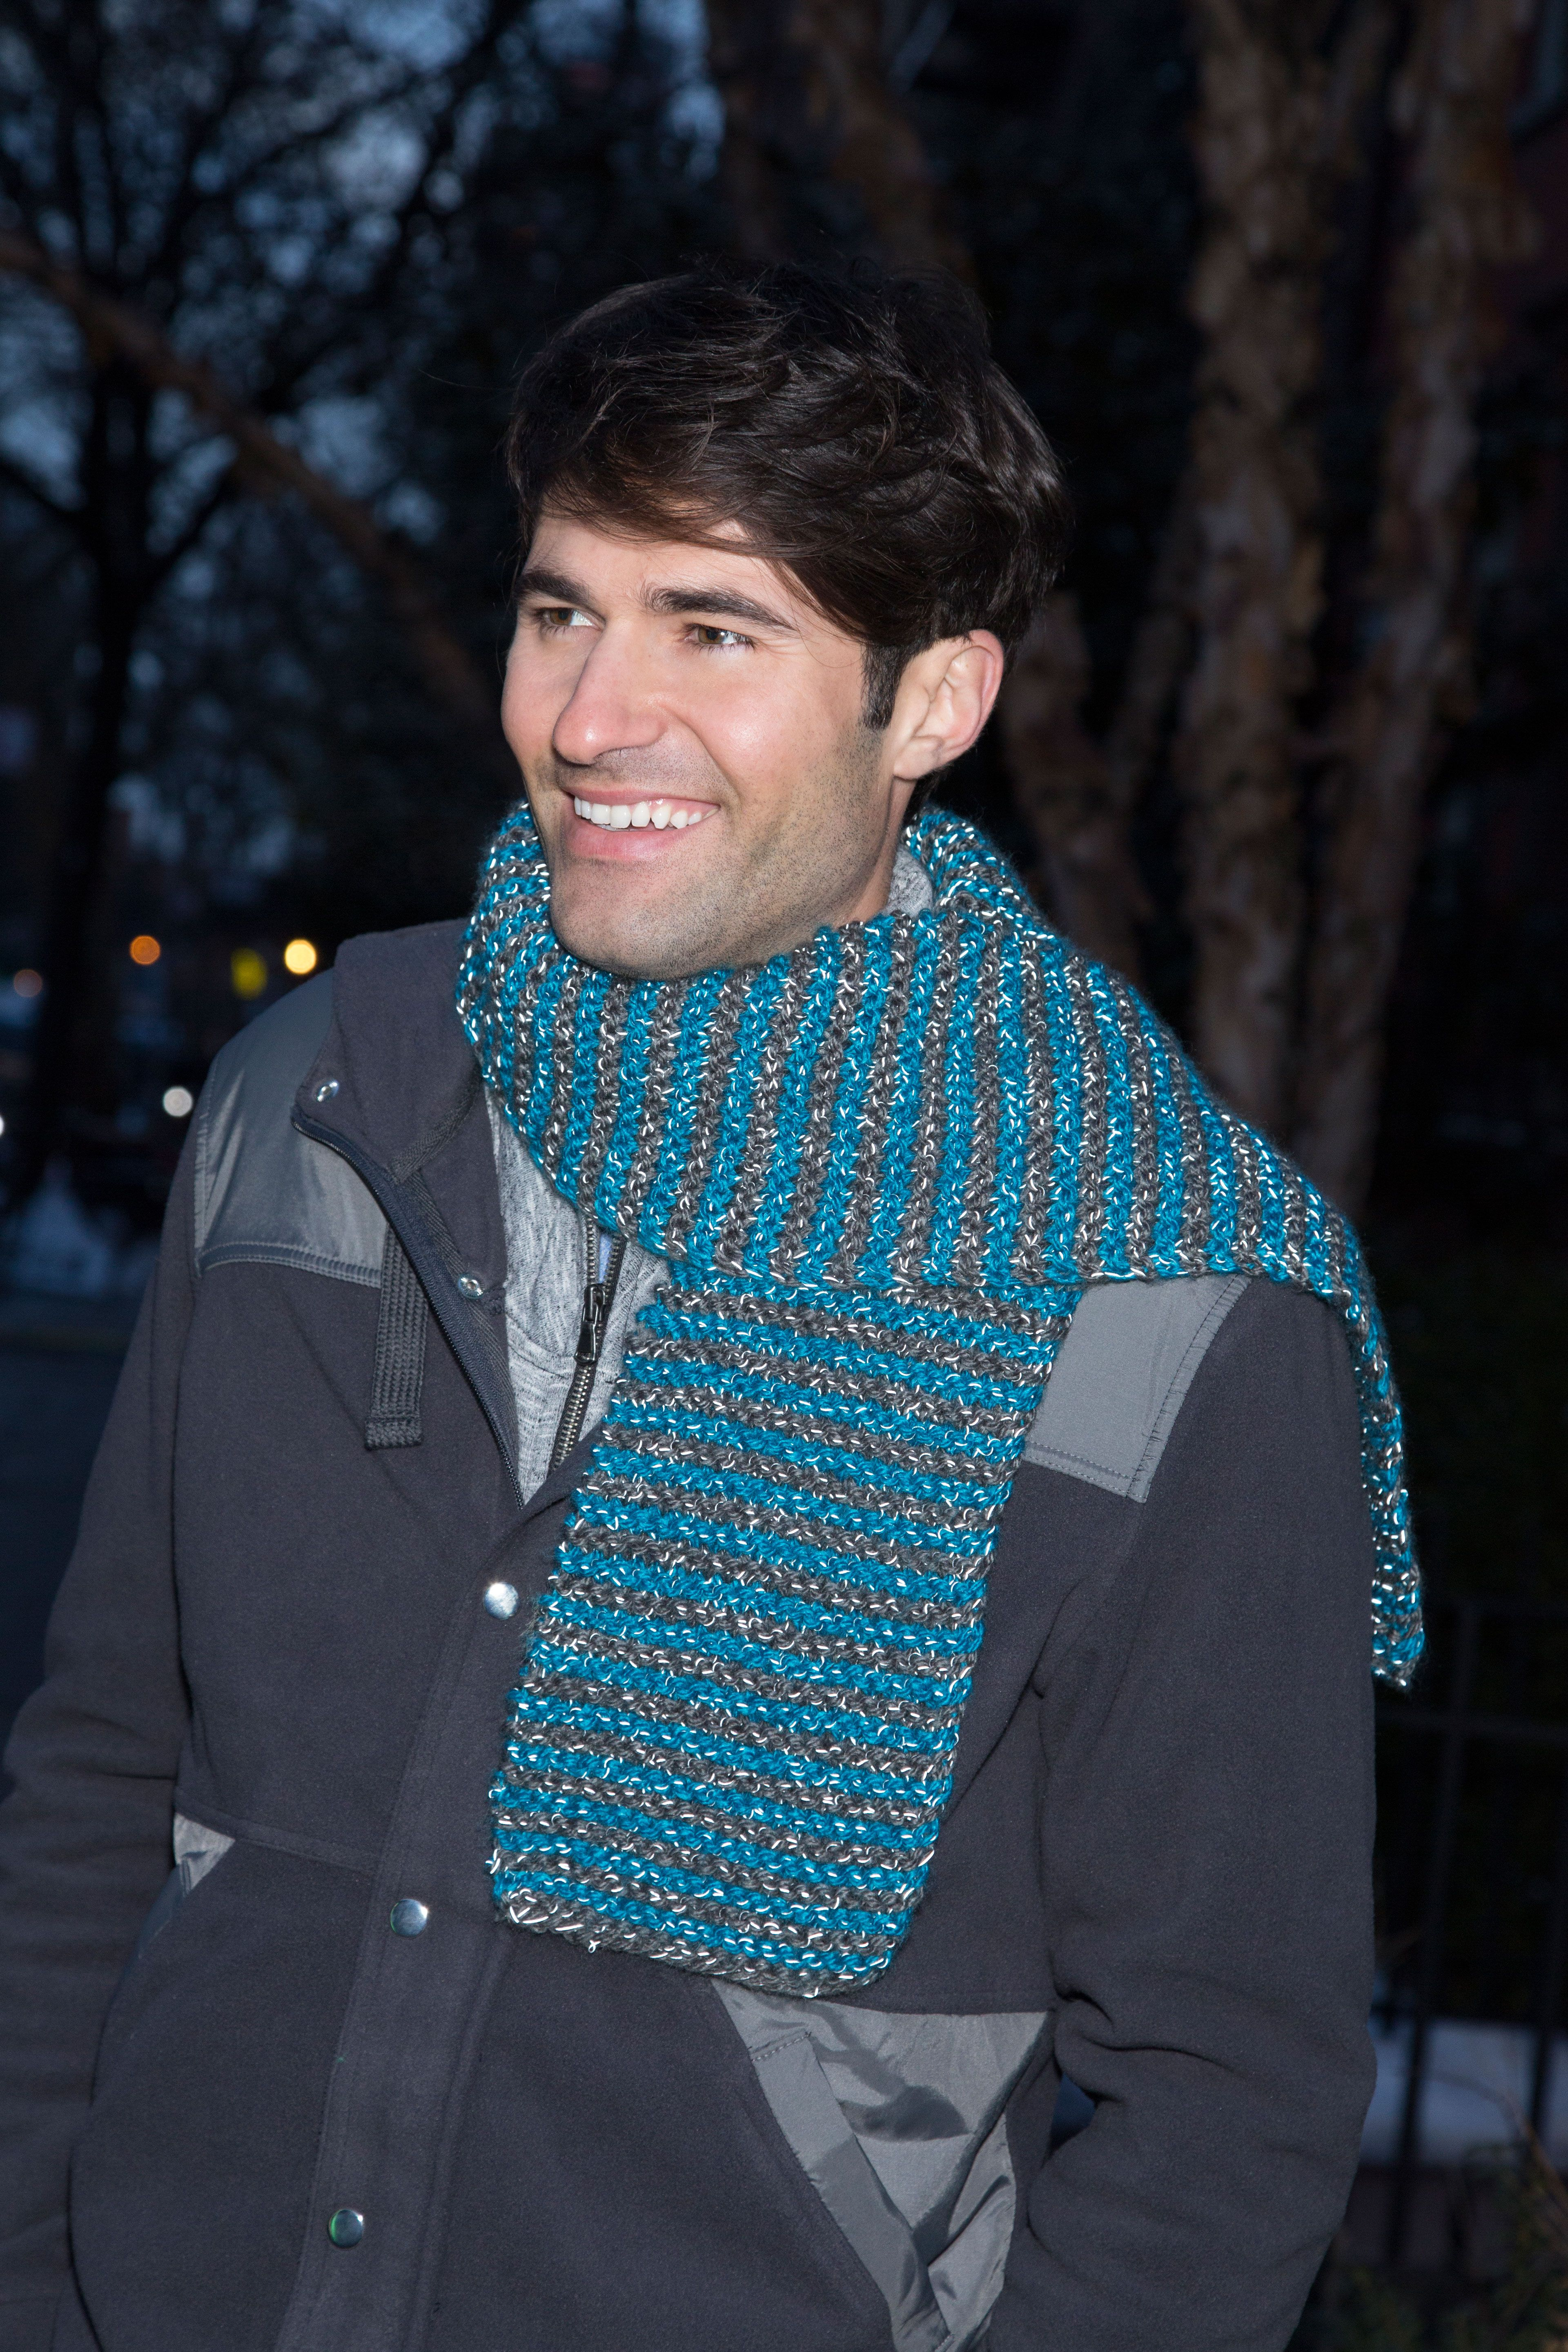 Knit in Stripes Scarf Free Knitting Pattern in Red Heart Yarns ...